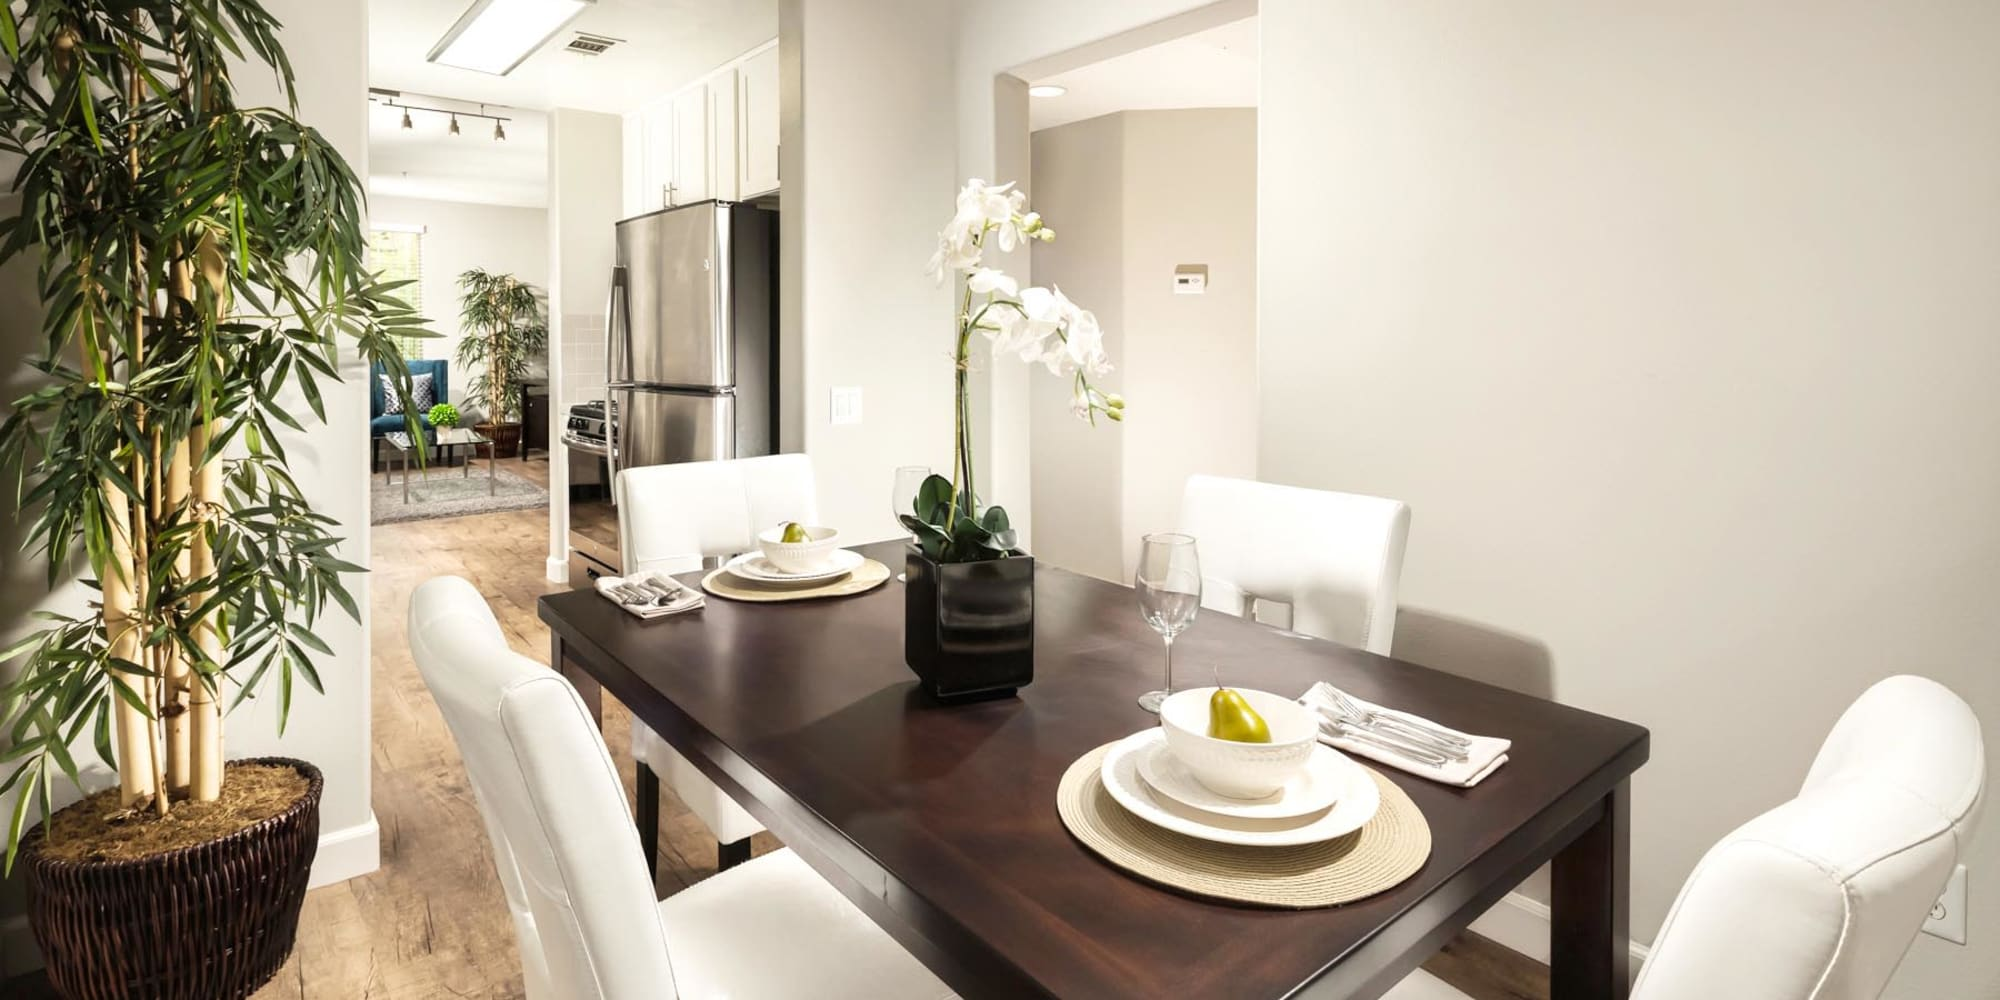 Well-furnished dining area in a model apartment at Mission Hills in Camarillo, California